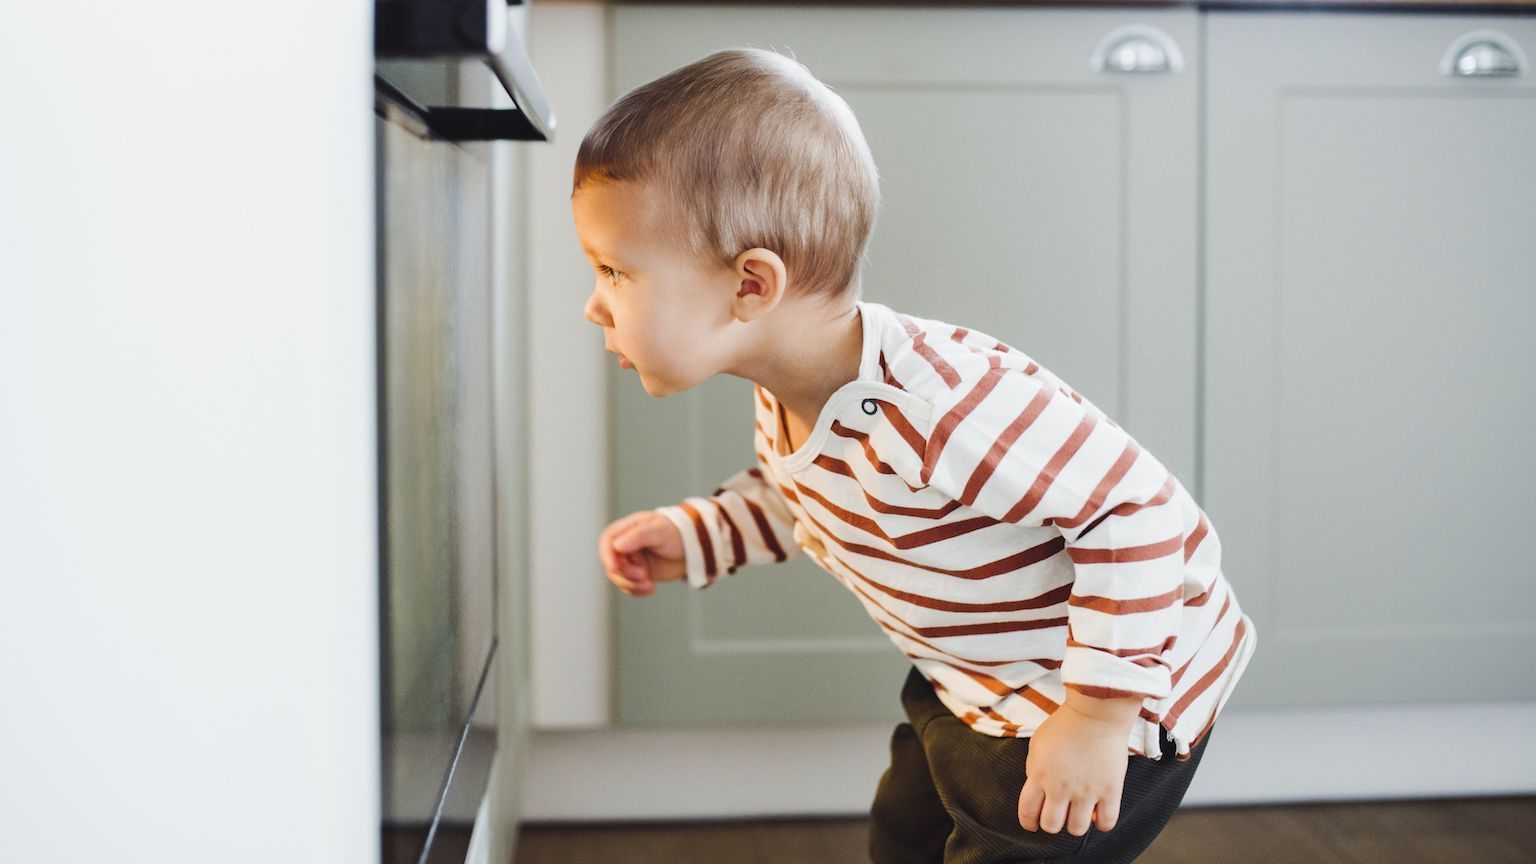 Little boy peering into an oven